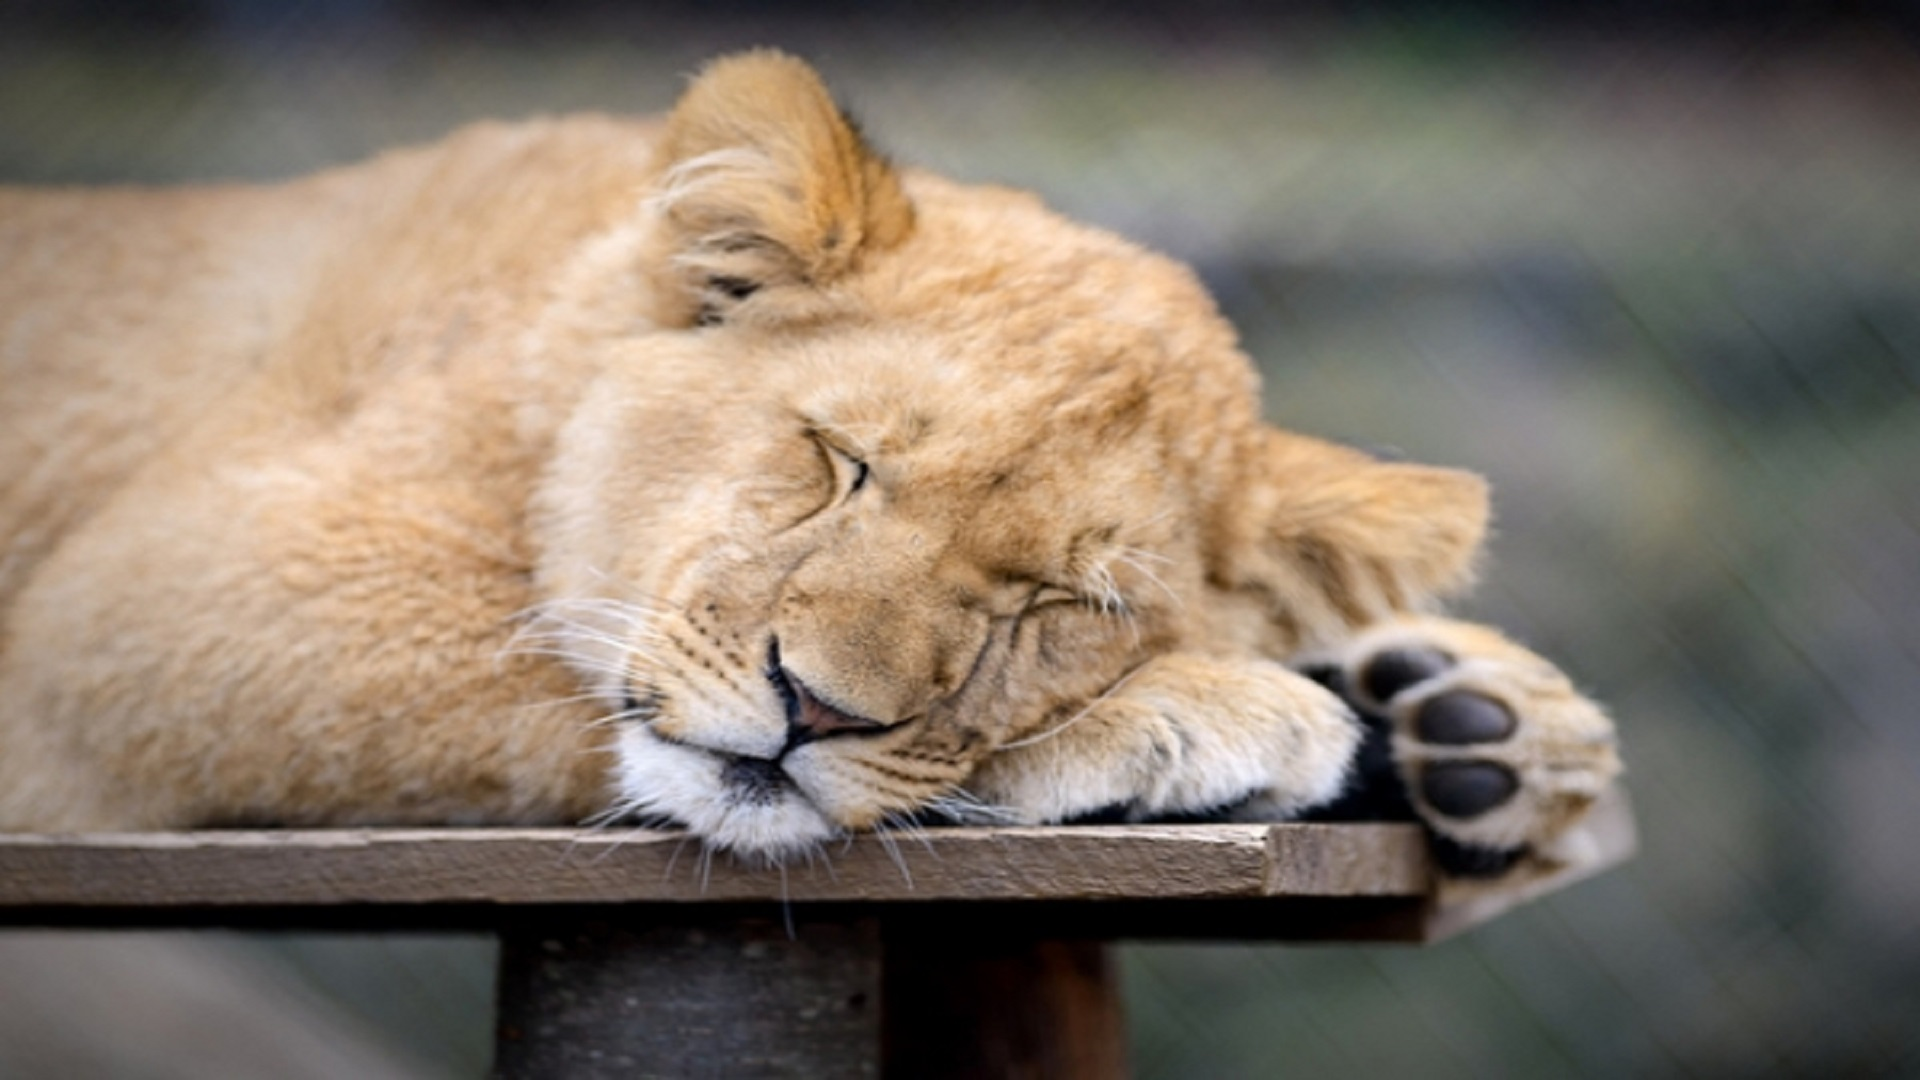 Sleeping-Lion-Africa-Hd-Free-Wallpapers - Hd Wallpaper-4212